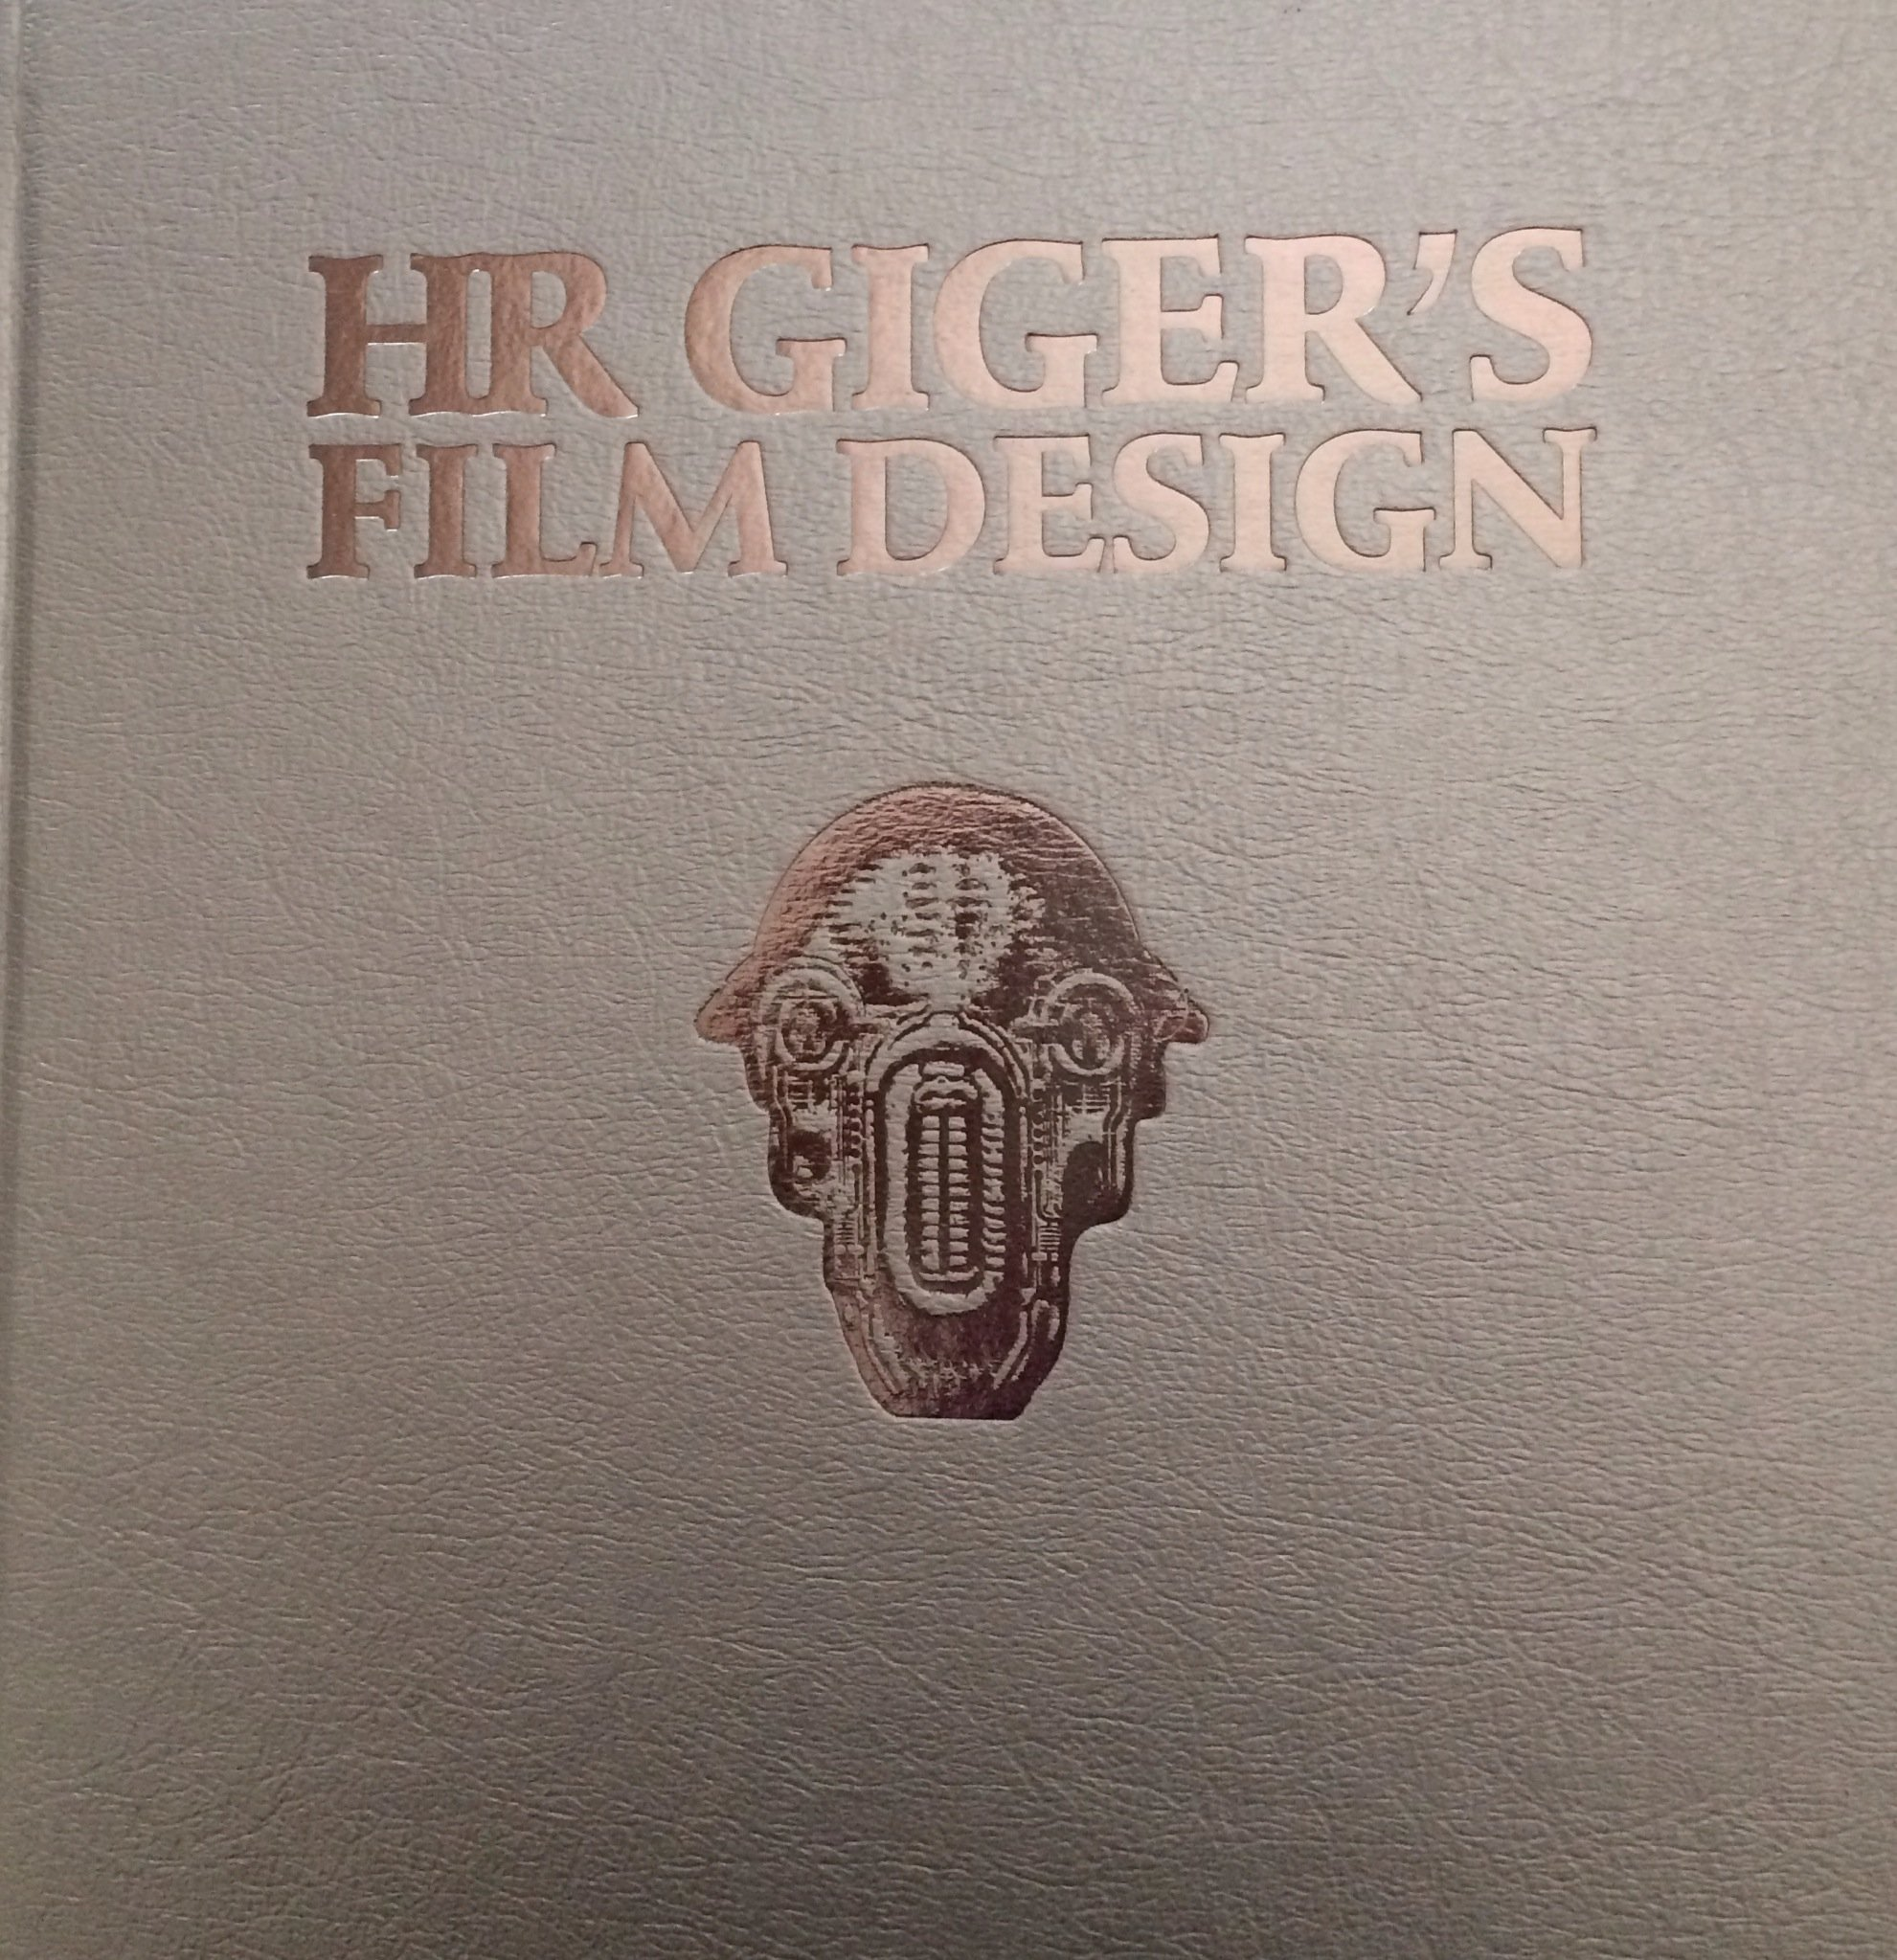 H. R. Giger's Film Design, Limited Edition of 350 Copies with Signed &  Numbered Alien3 Original Lithograph Bound In: Amazon.co.uk: H.R. Giger: ...